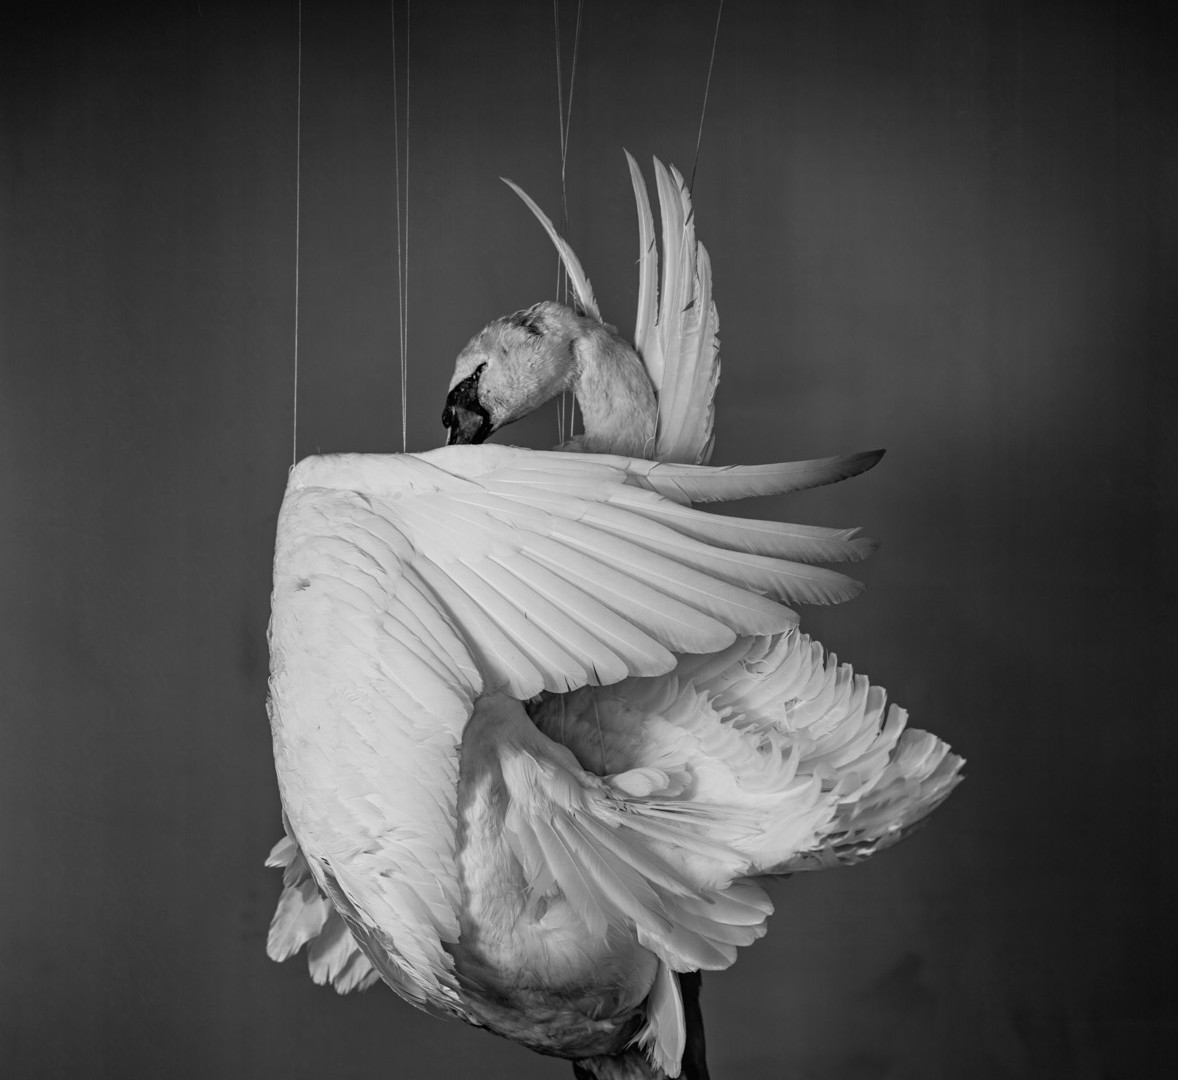 Richard Learoyd, Swan, 2013